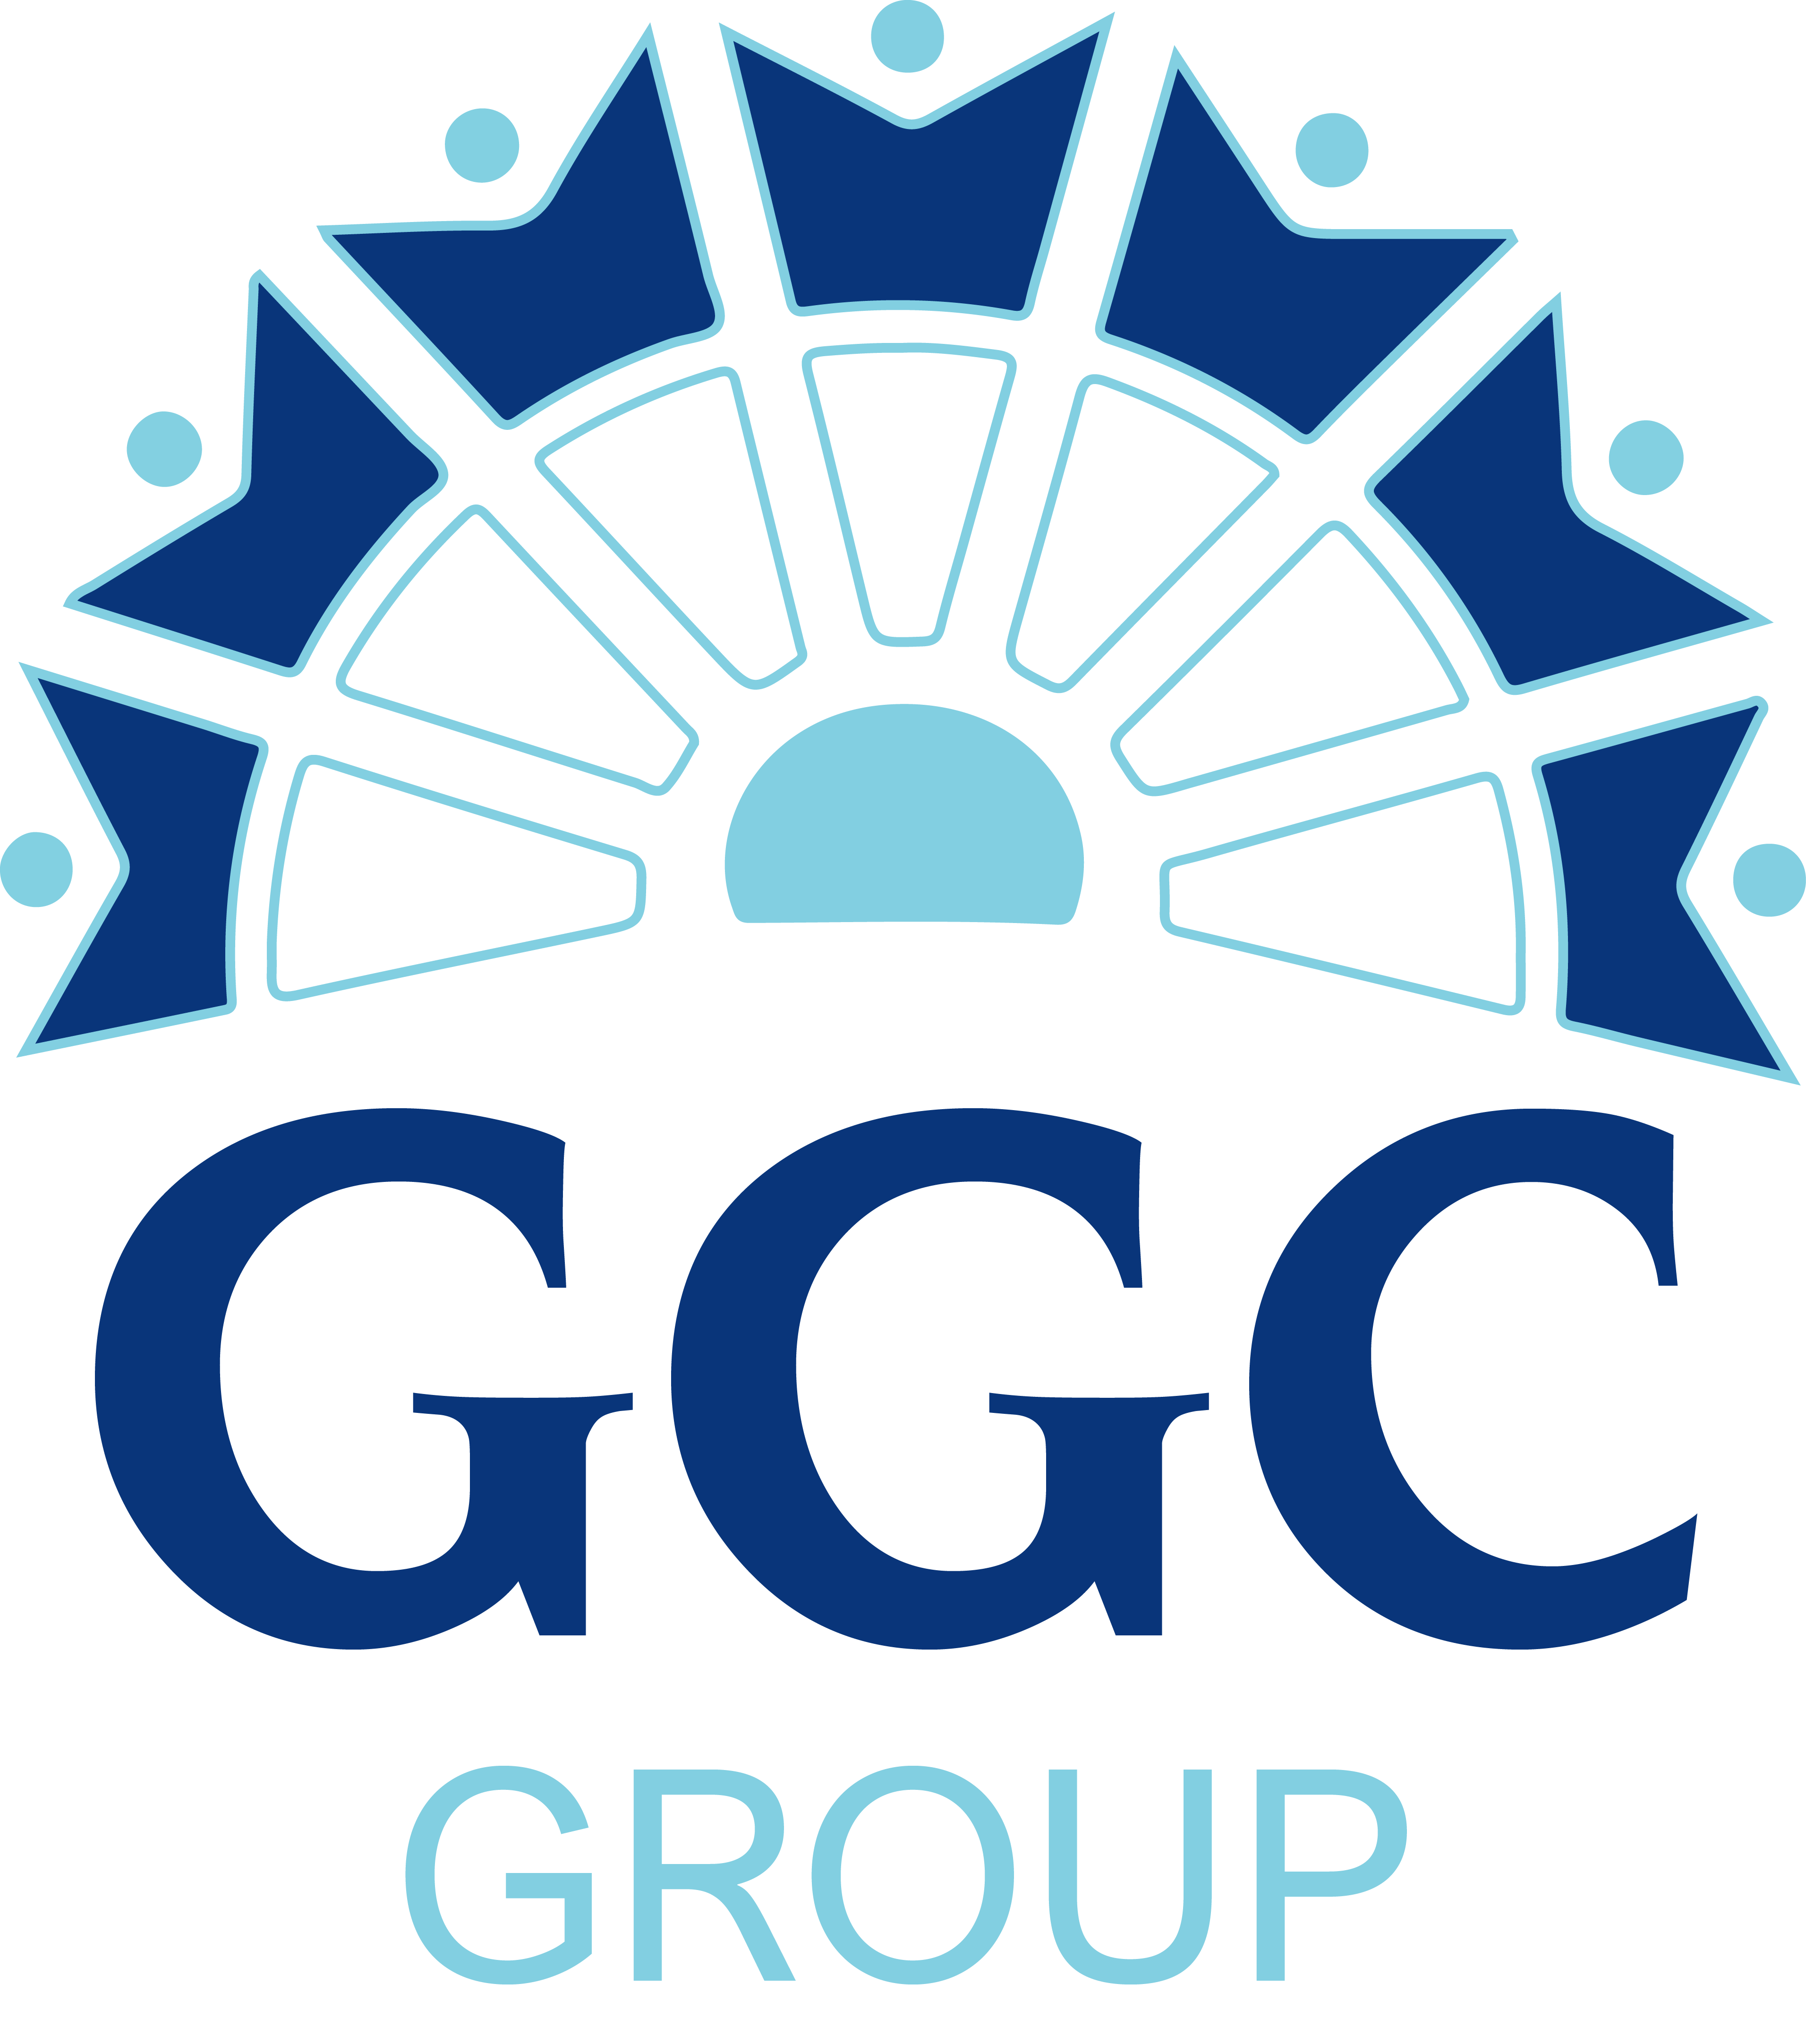 GGC Group